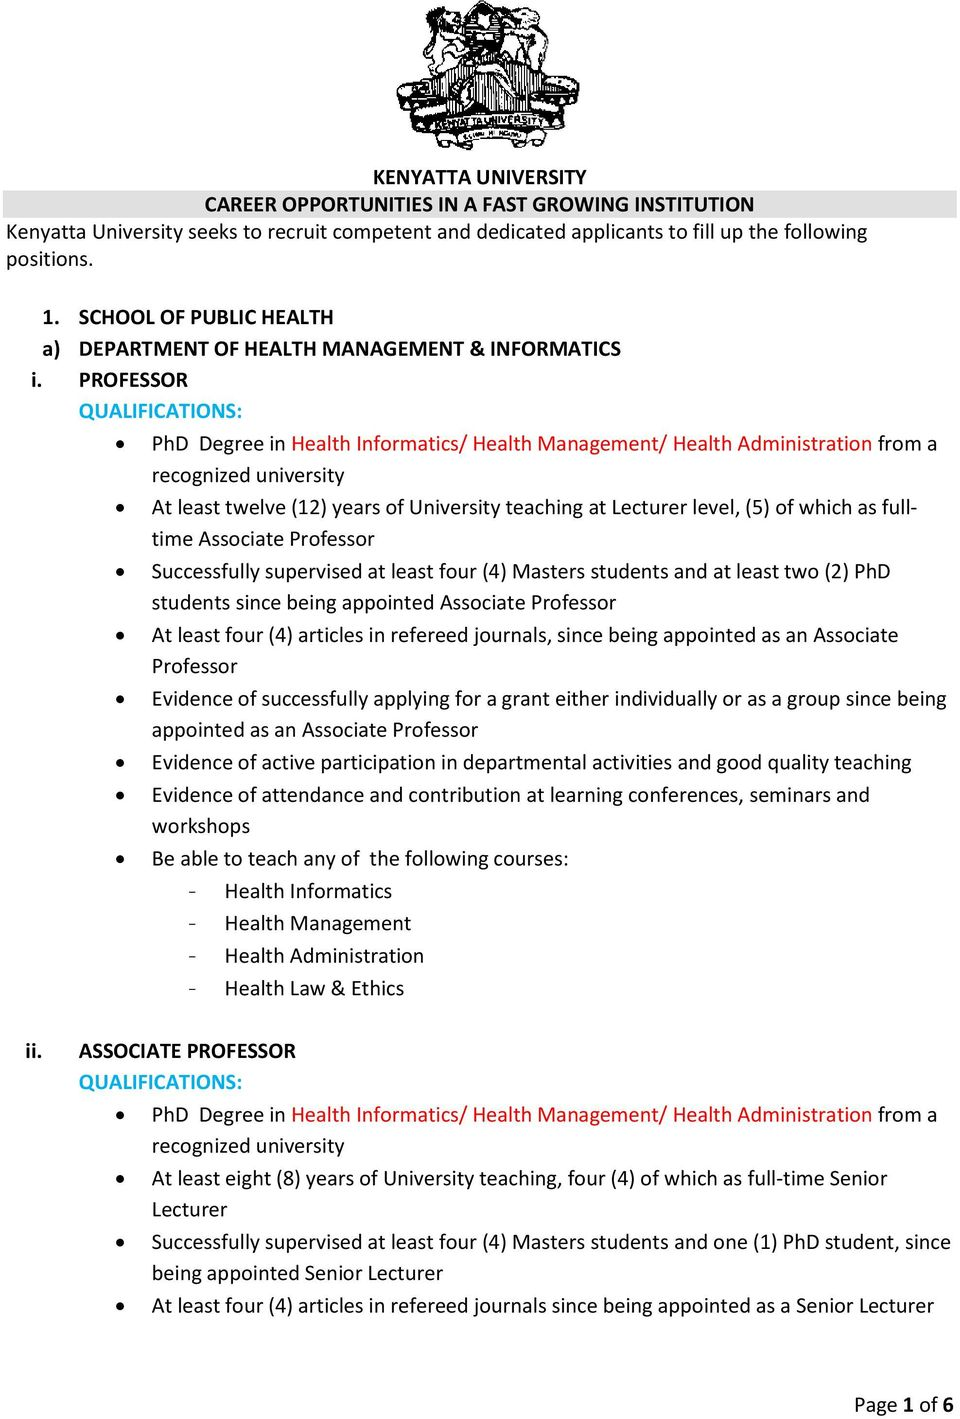 PROFESSOR PhD Degree in Health Informatics/ Health Management/ Health Administration from a recognized university At least twelve (12) years of University teaching at Lecturer level, (5) of which as